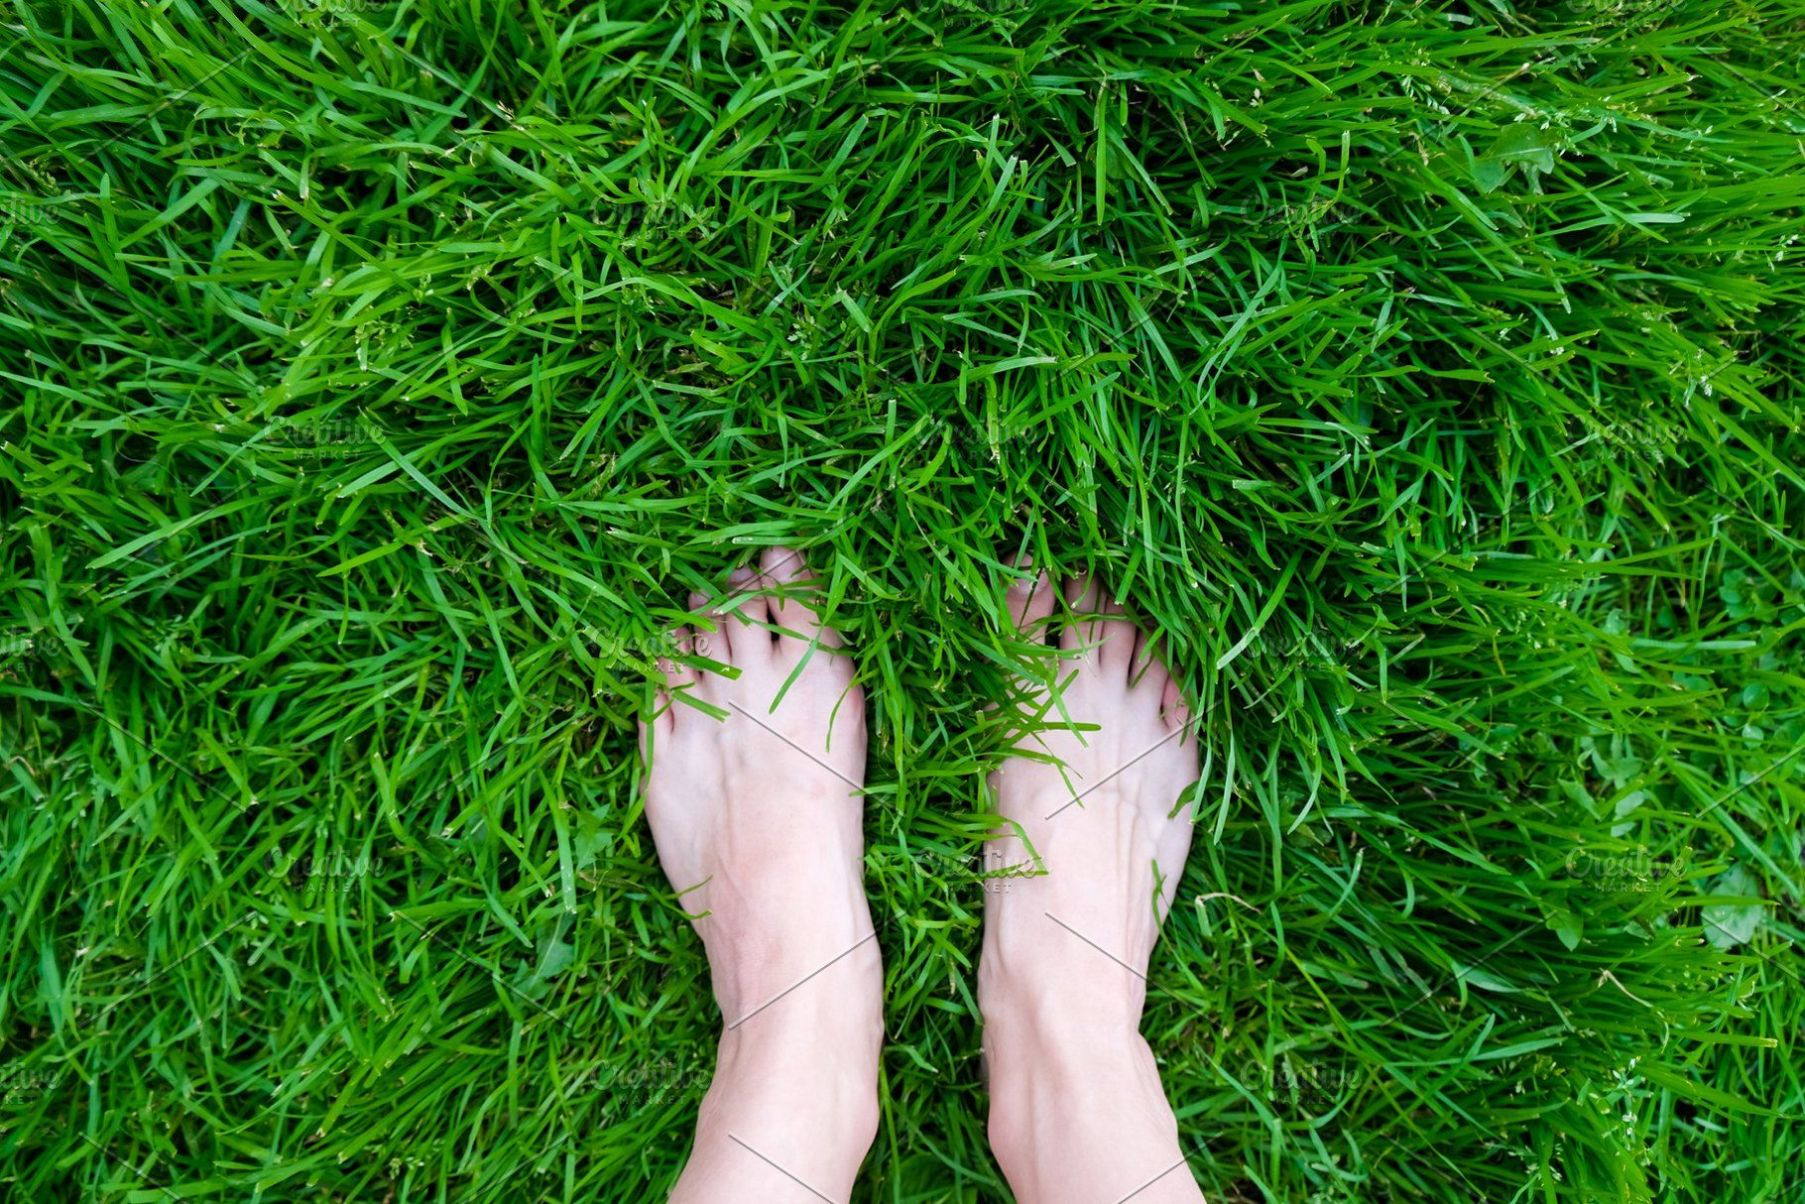 Barefoot in the grass, head in the Clouds: Nature's Spectacle- A Musing in The Riptide July 2021